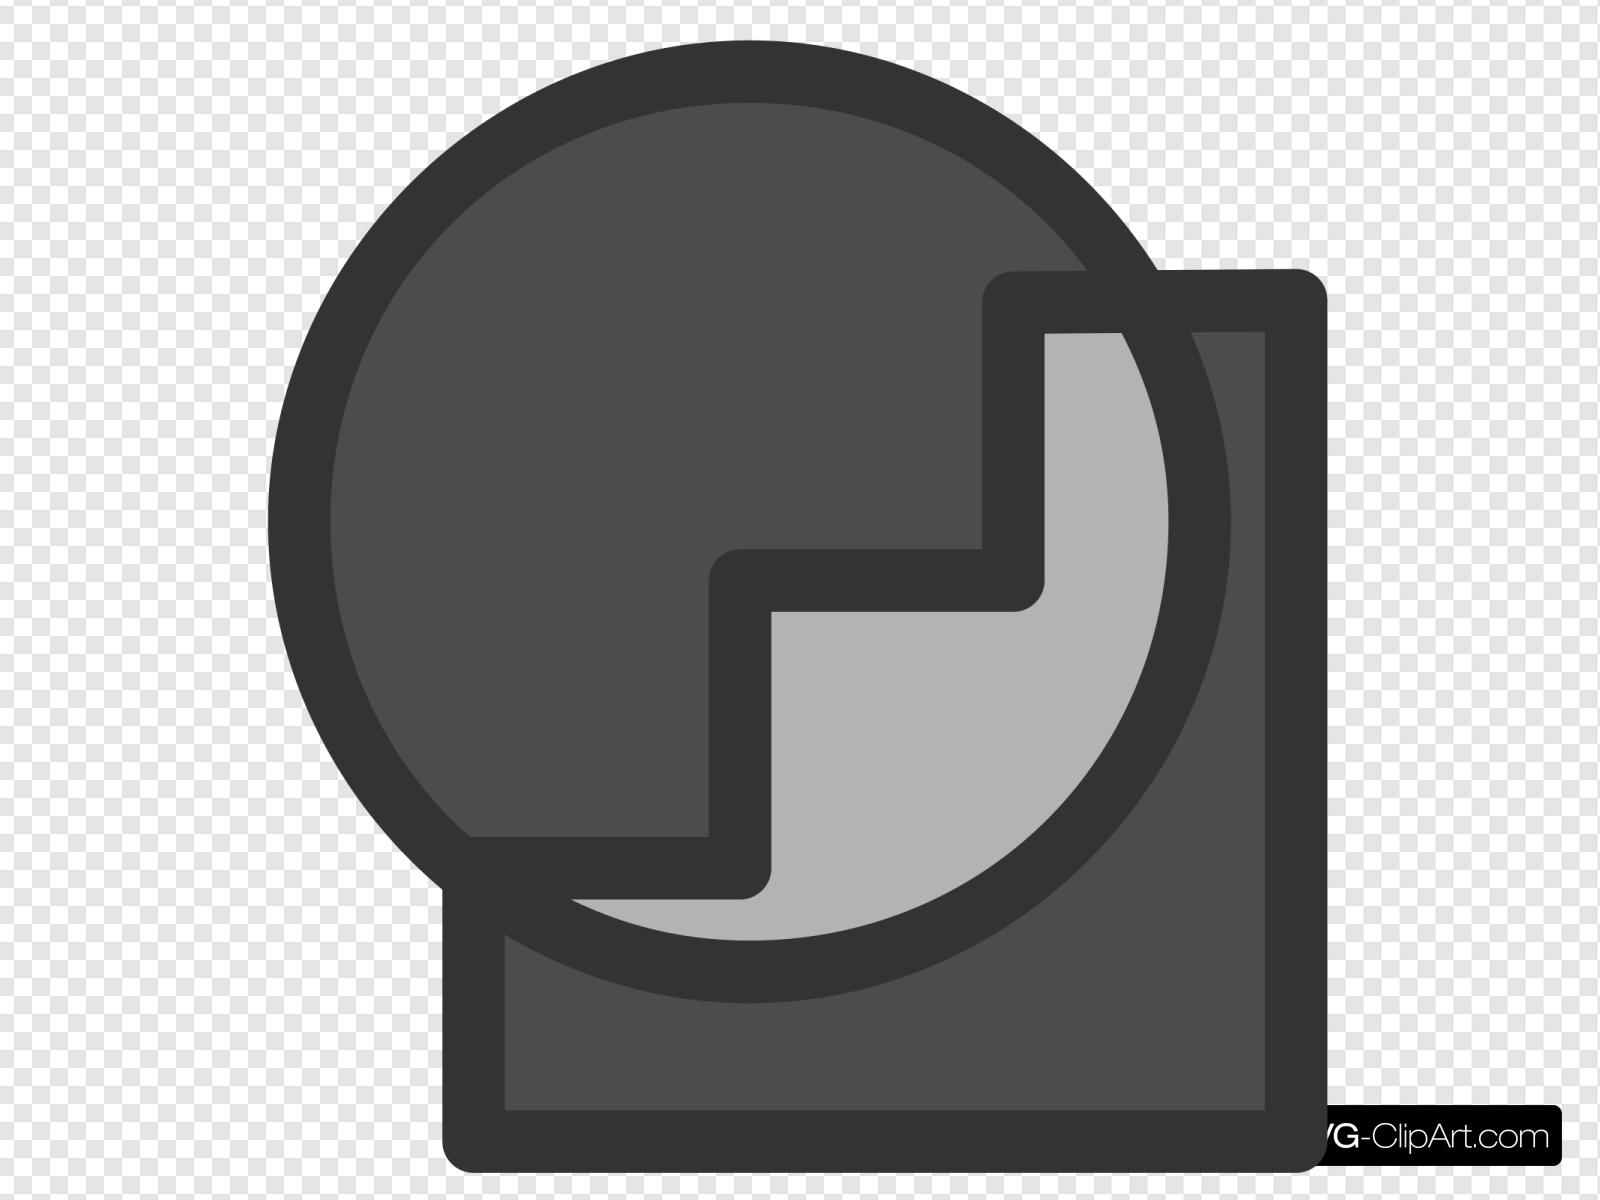 Windows Maker Application Clip art, Icon and SVG.